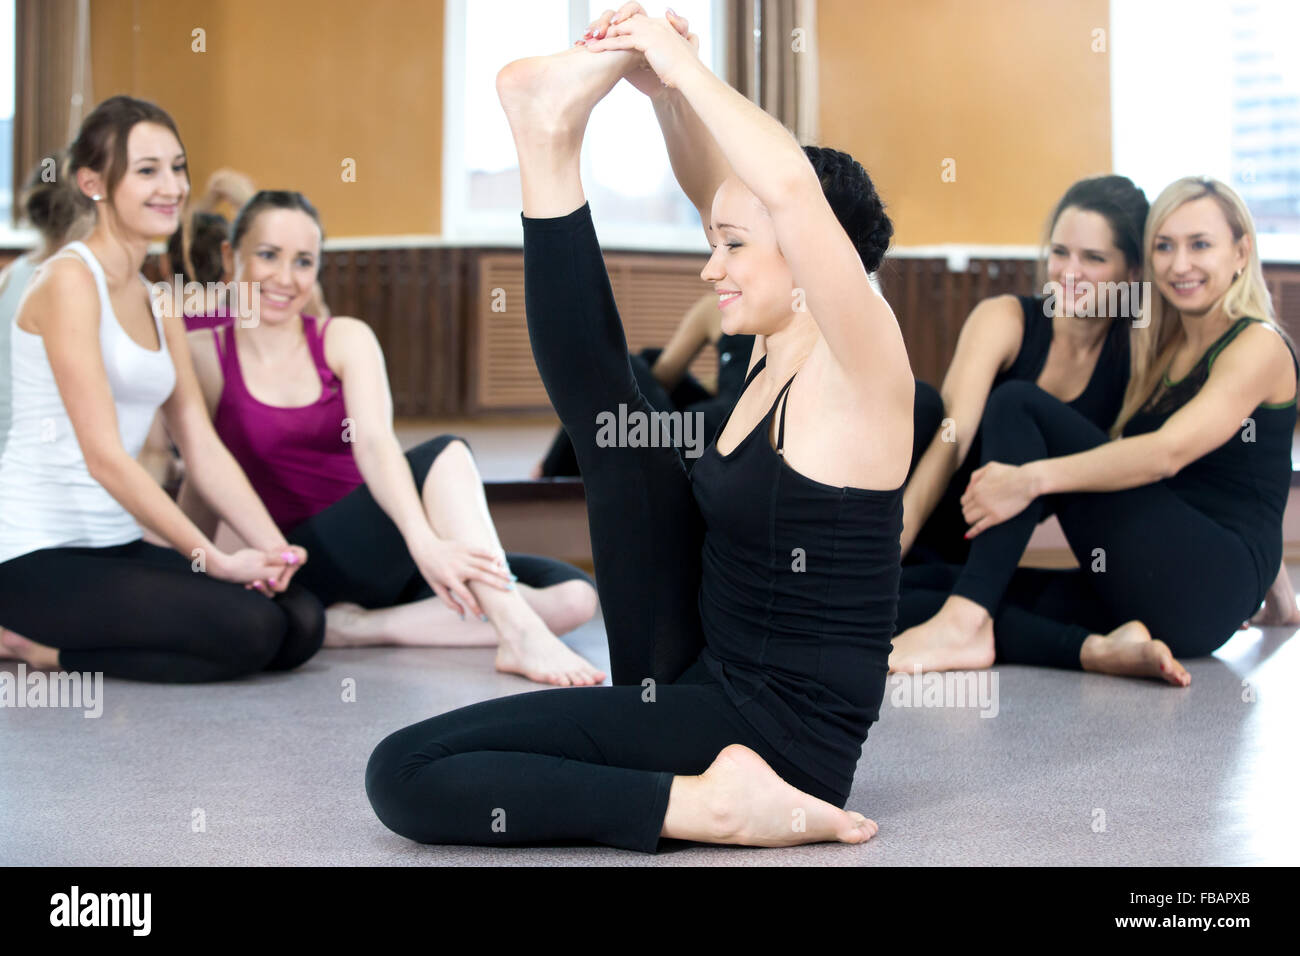 Yoga girl practices stretching, doing fitness exercises in black sportswear in class, group of friends watching - Stock Image